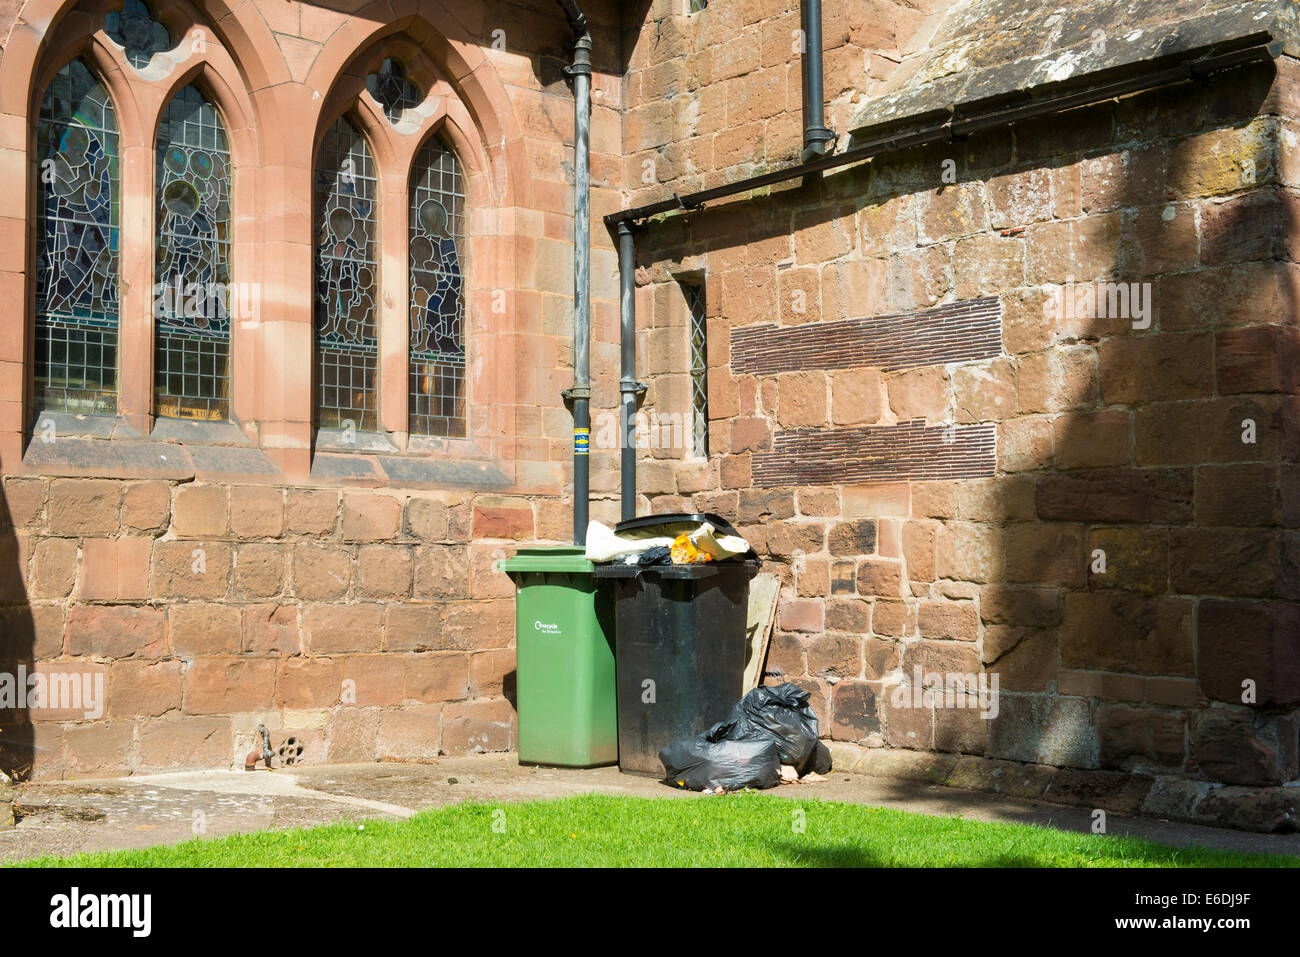 Rubbish bins outside St Andrew's Church in Shifnal, Shropshire, England - Stock Image